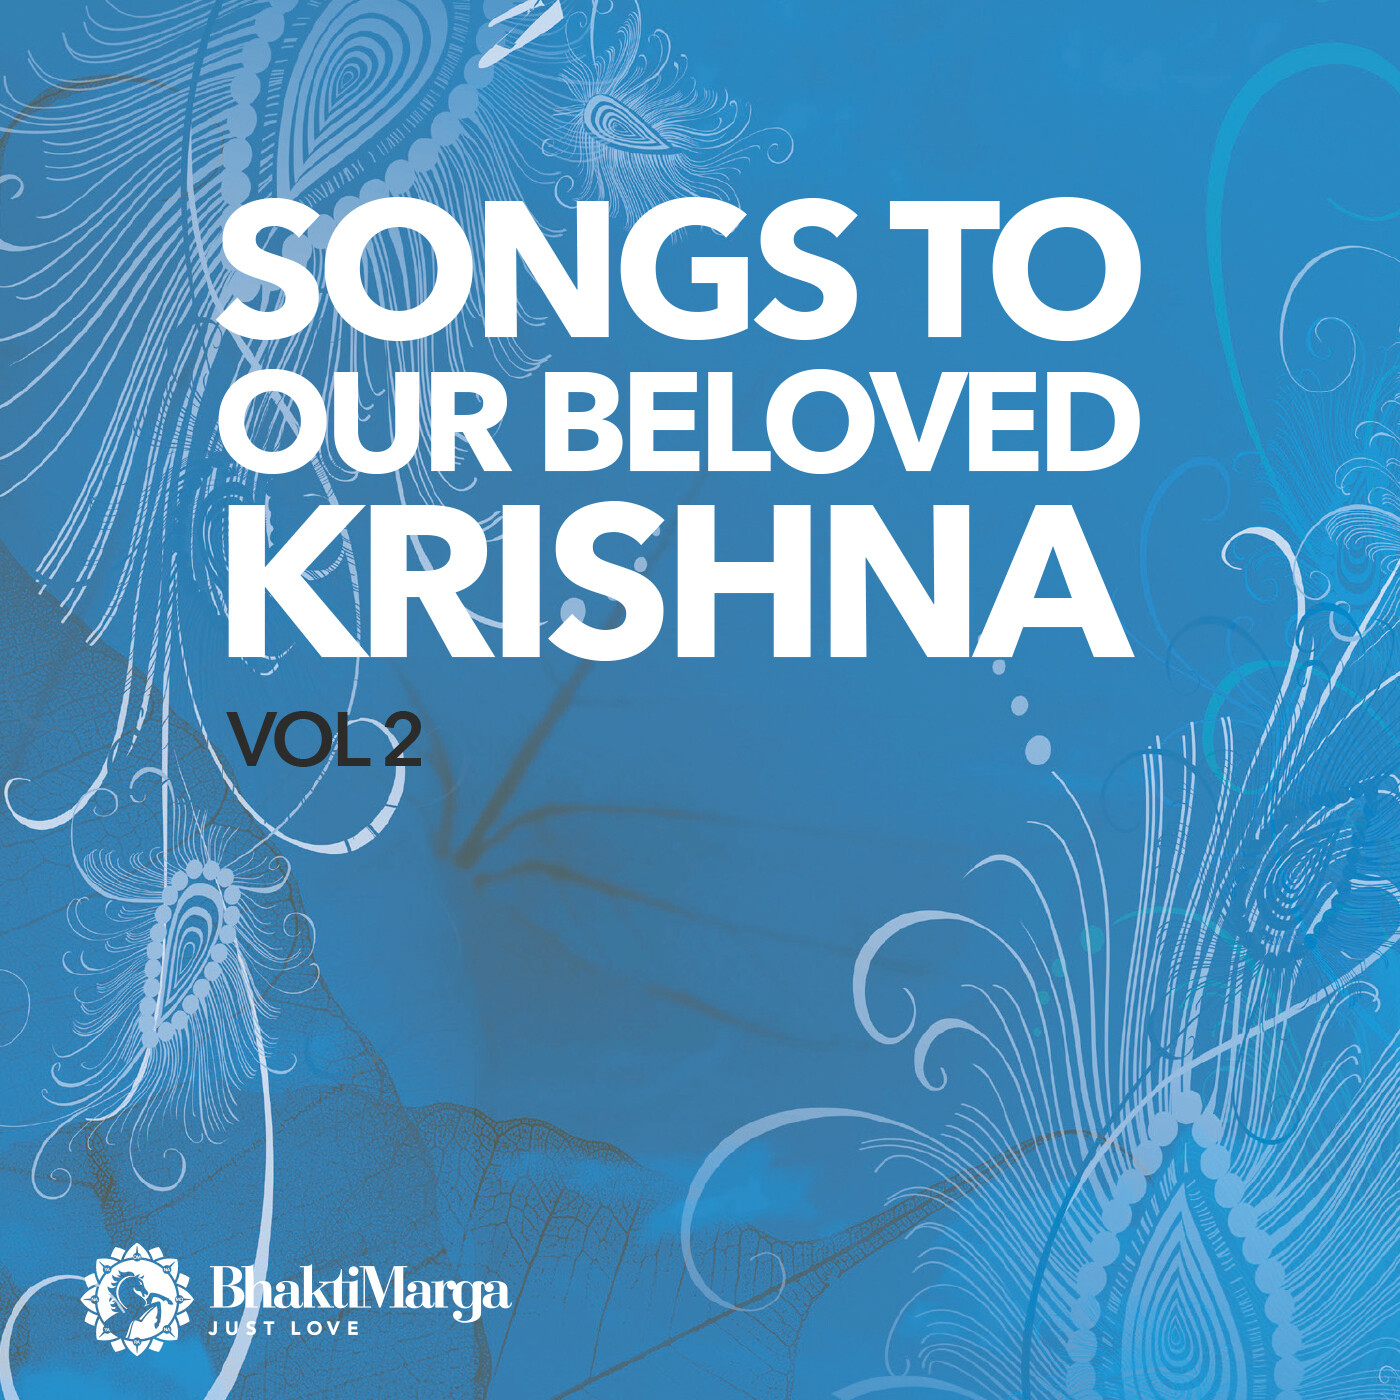 Song to Our Beloved Krishna vol.2